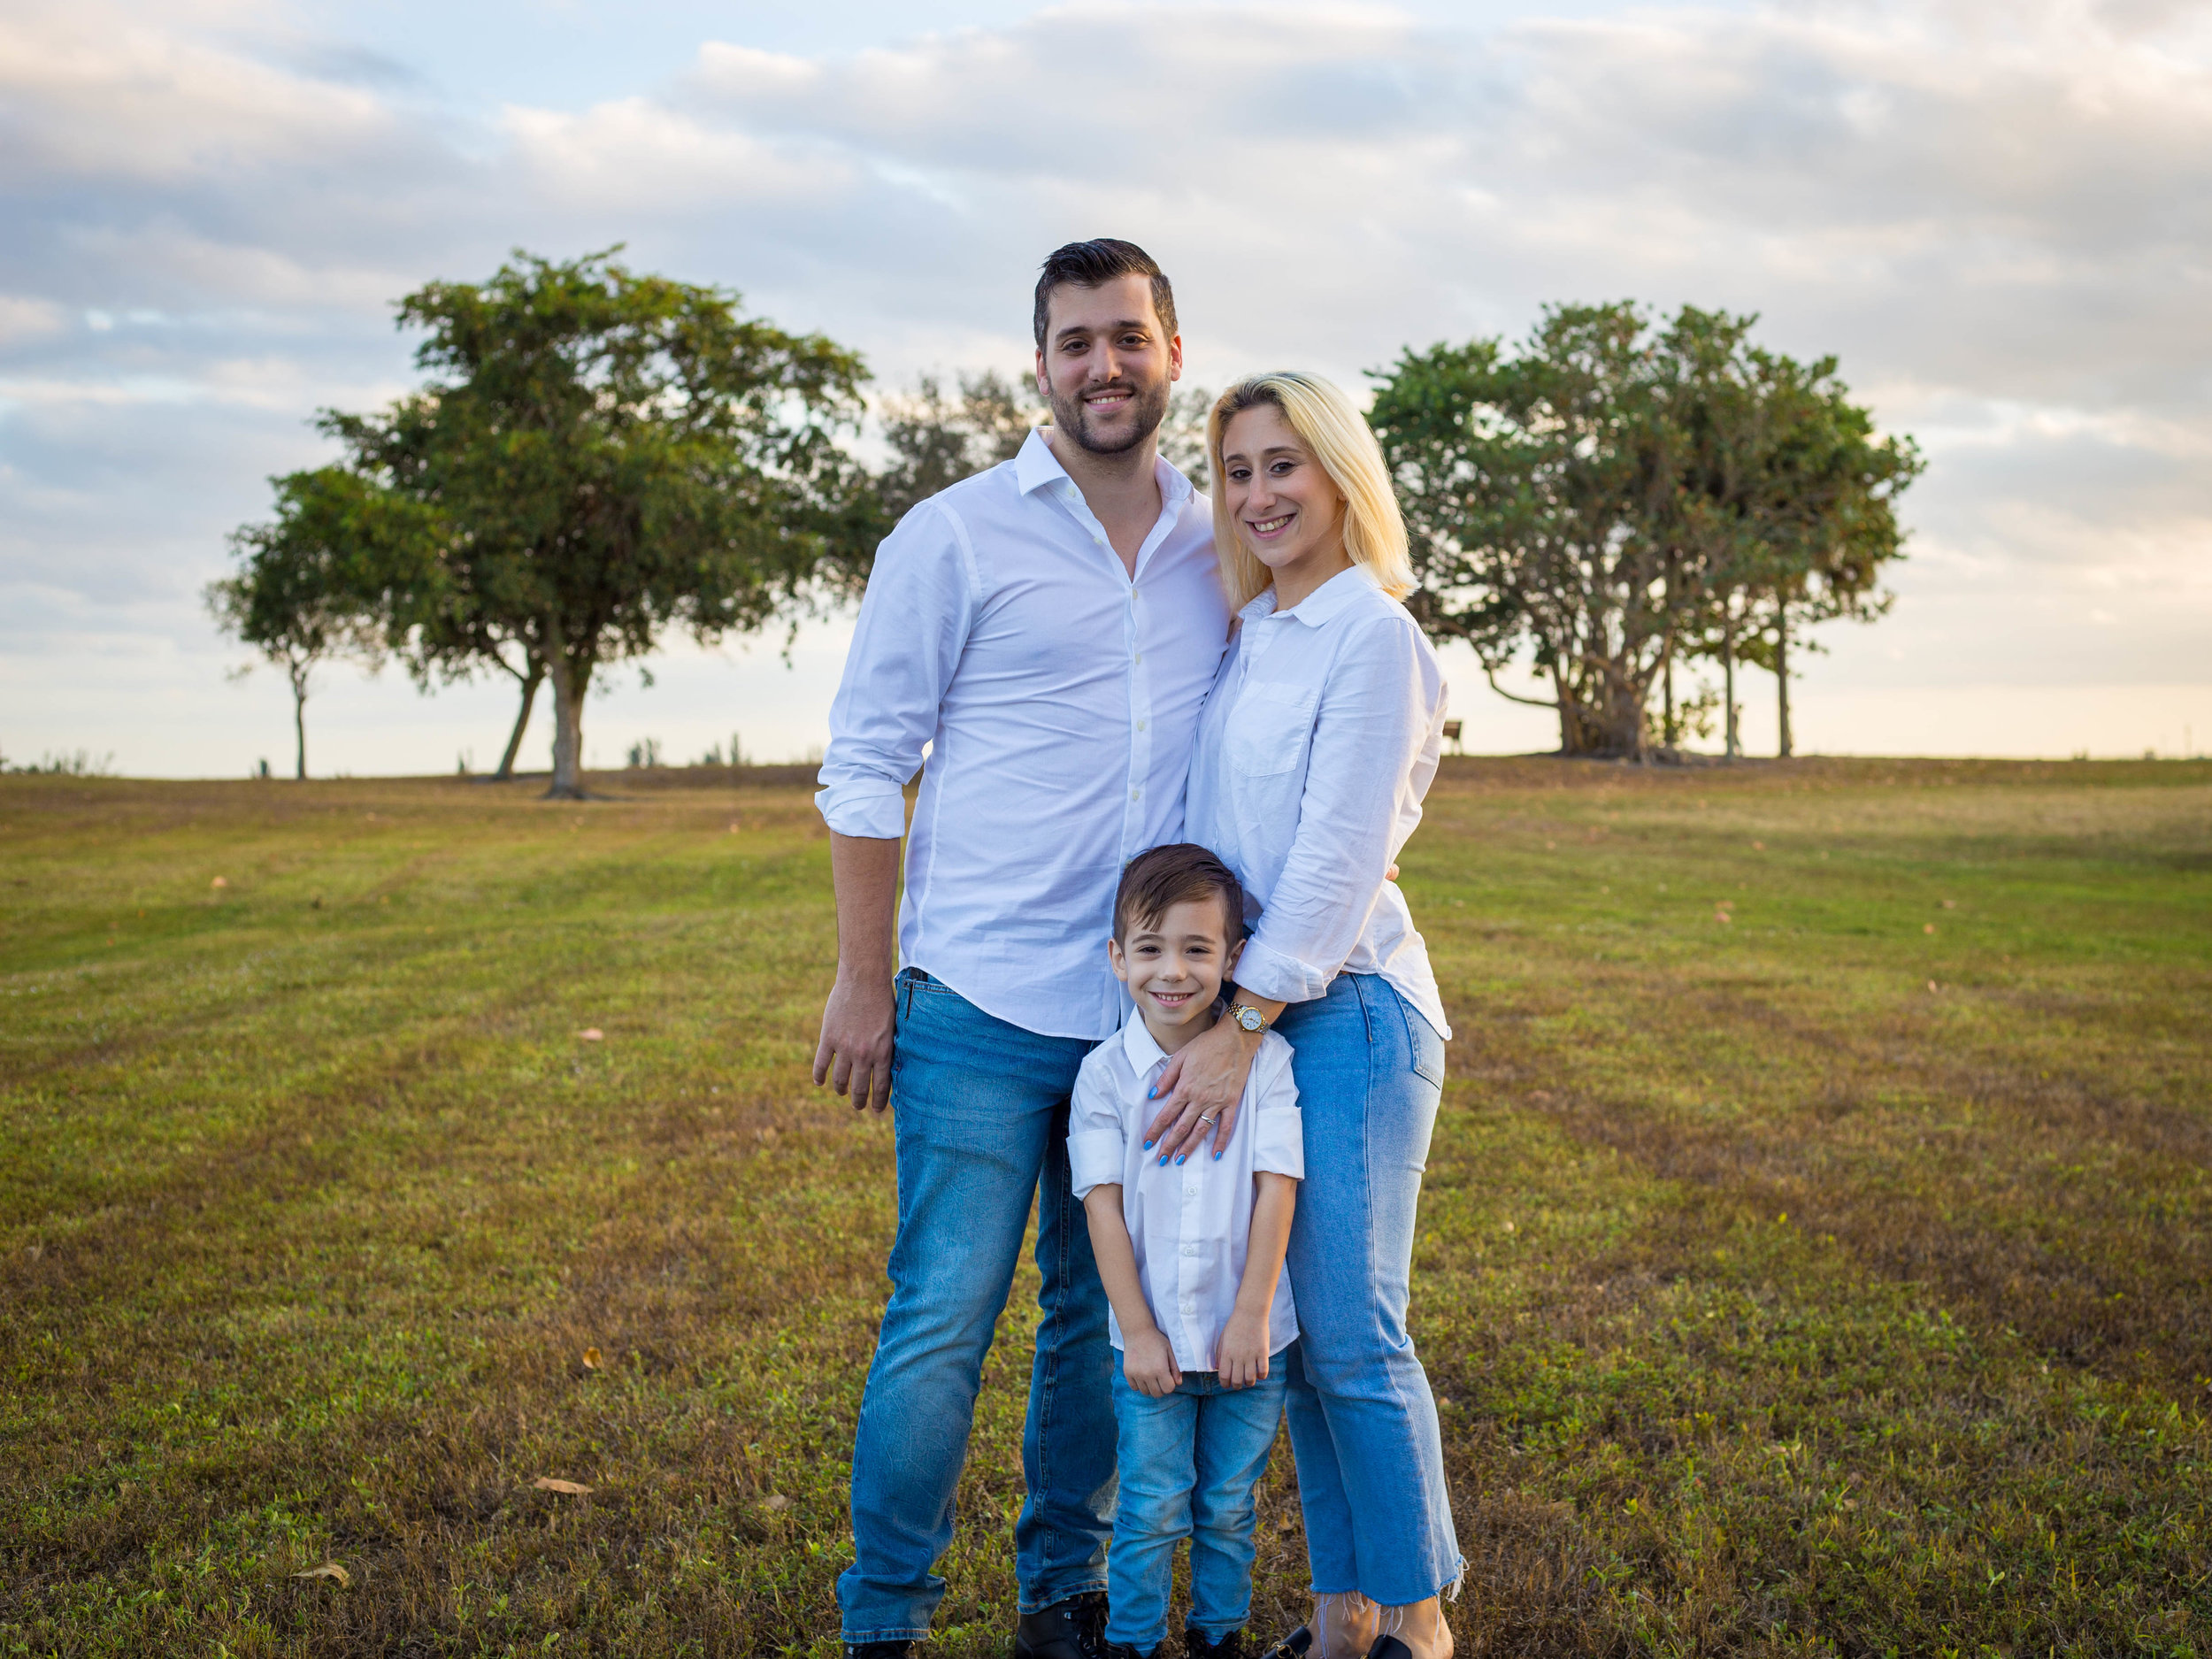 Services - South Florida based wedding & lifestyle photographer, Amber Kanak specializes in storytelling intimate weddings, families & motherhood, and portraits.Available for travel worldwide.